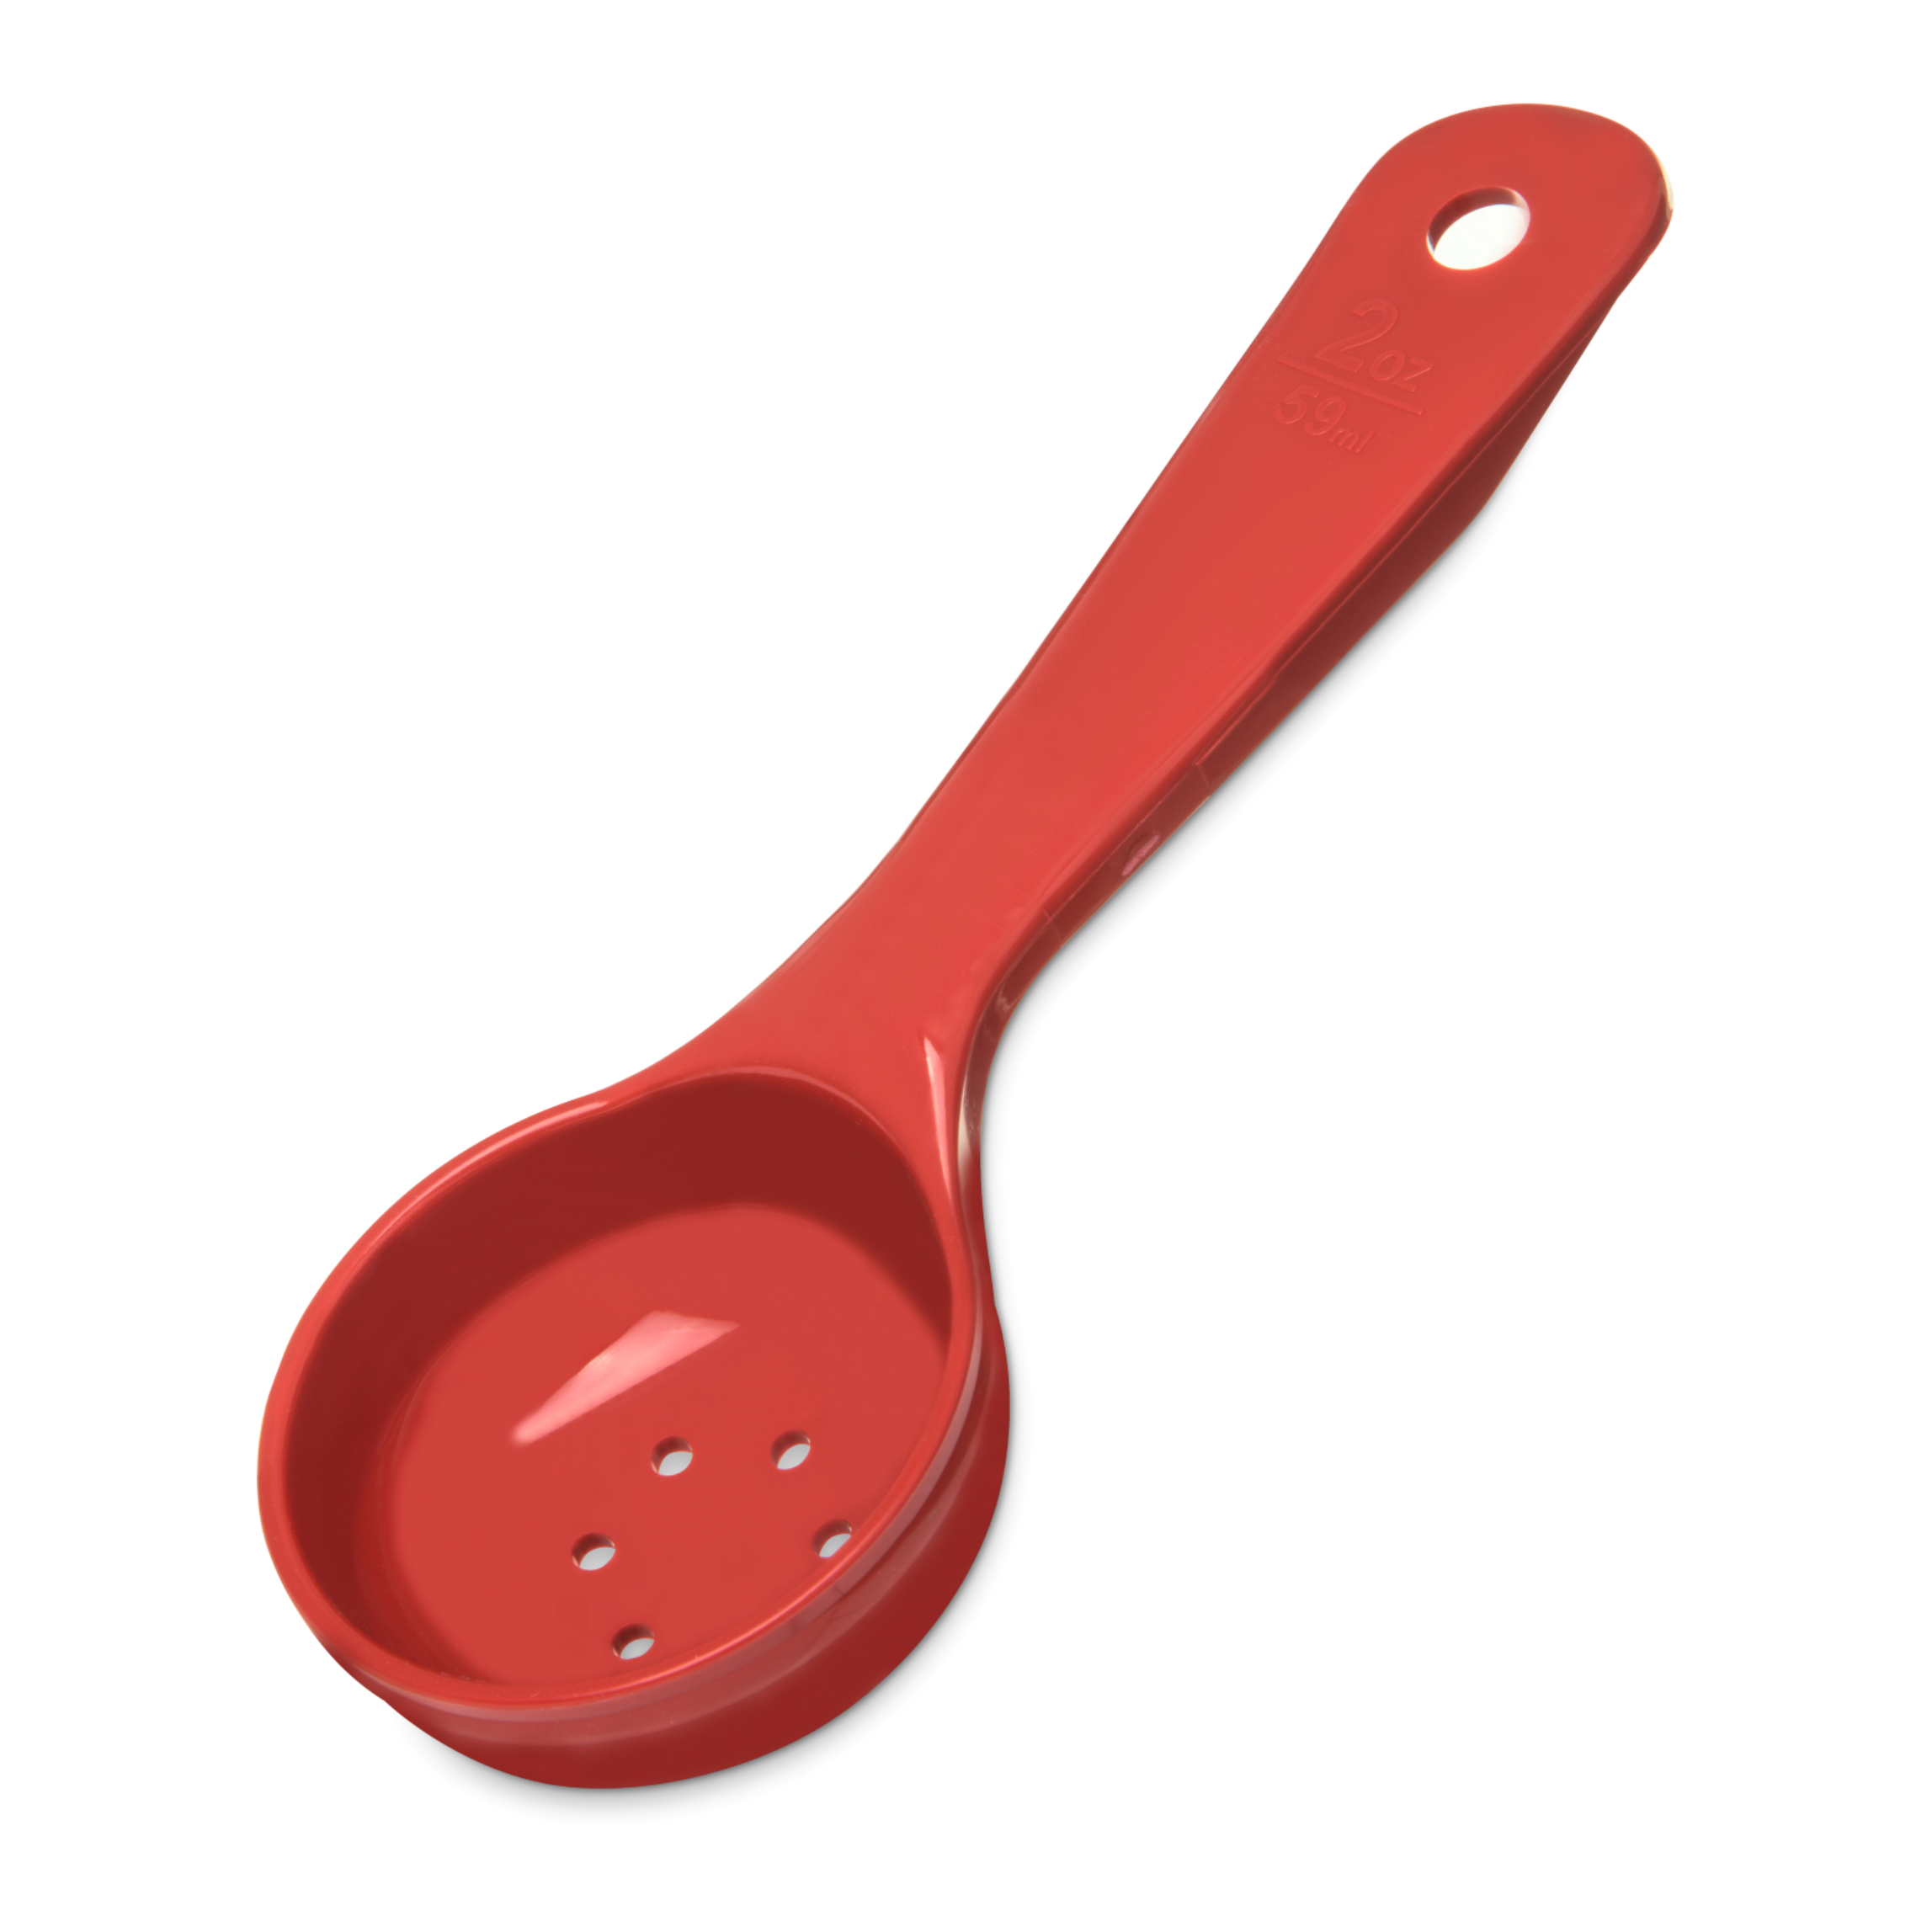 2350-94 Carlisle Spoon, 2oz Perforated Portion Control Red